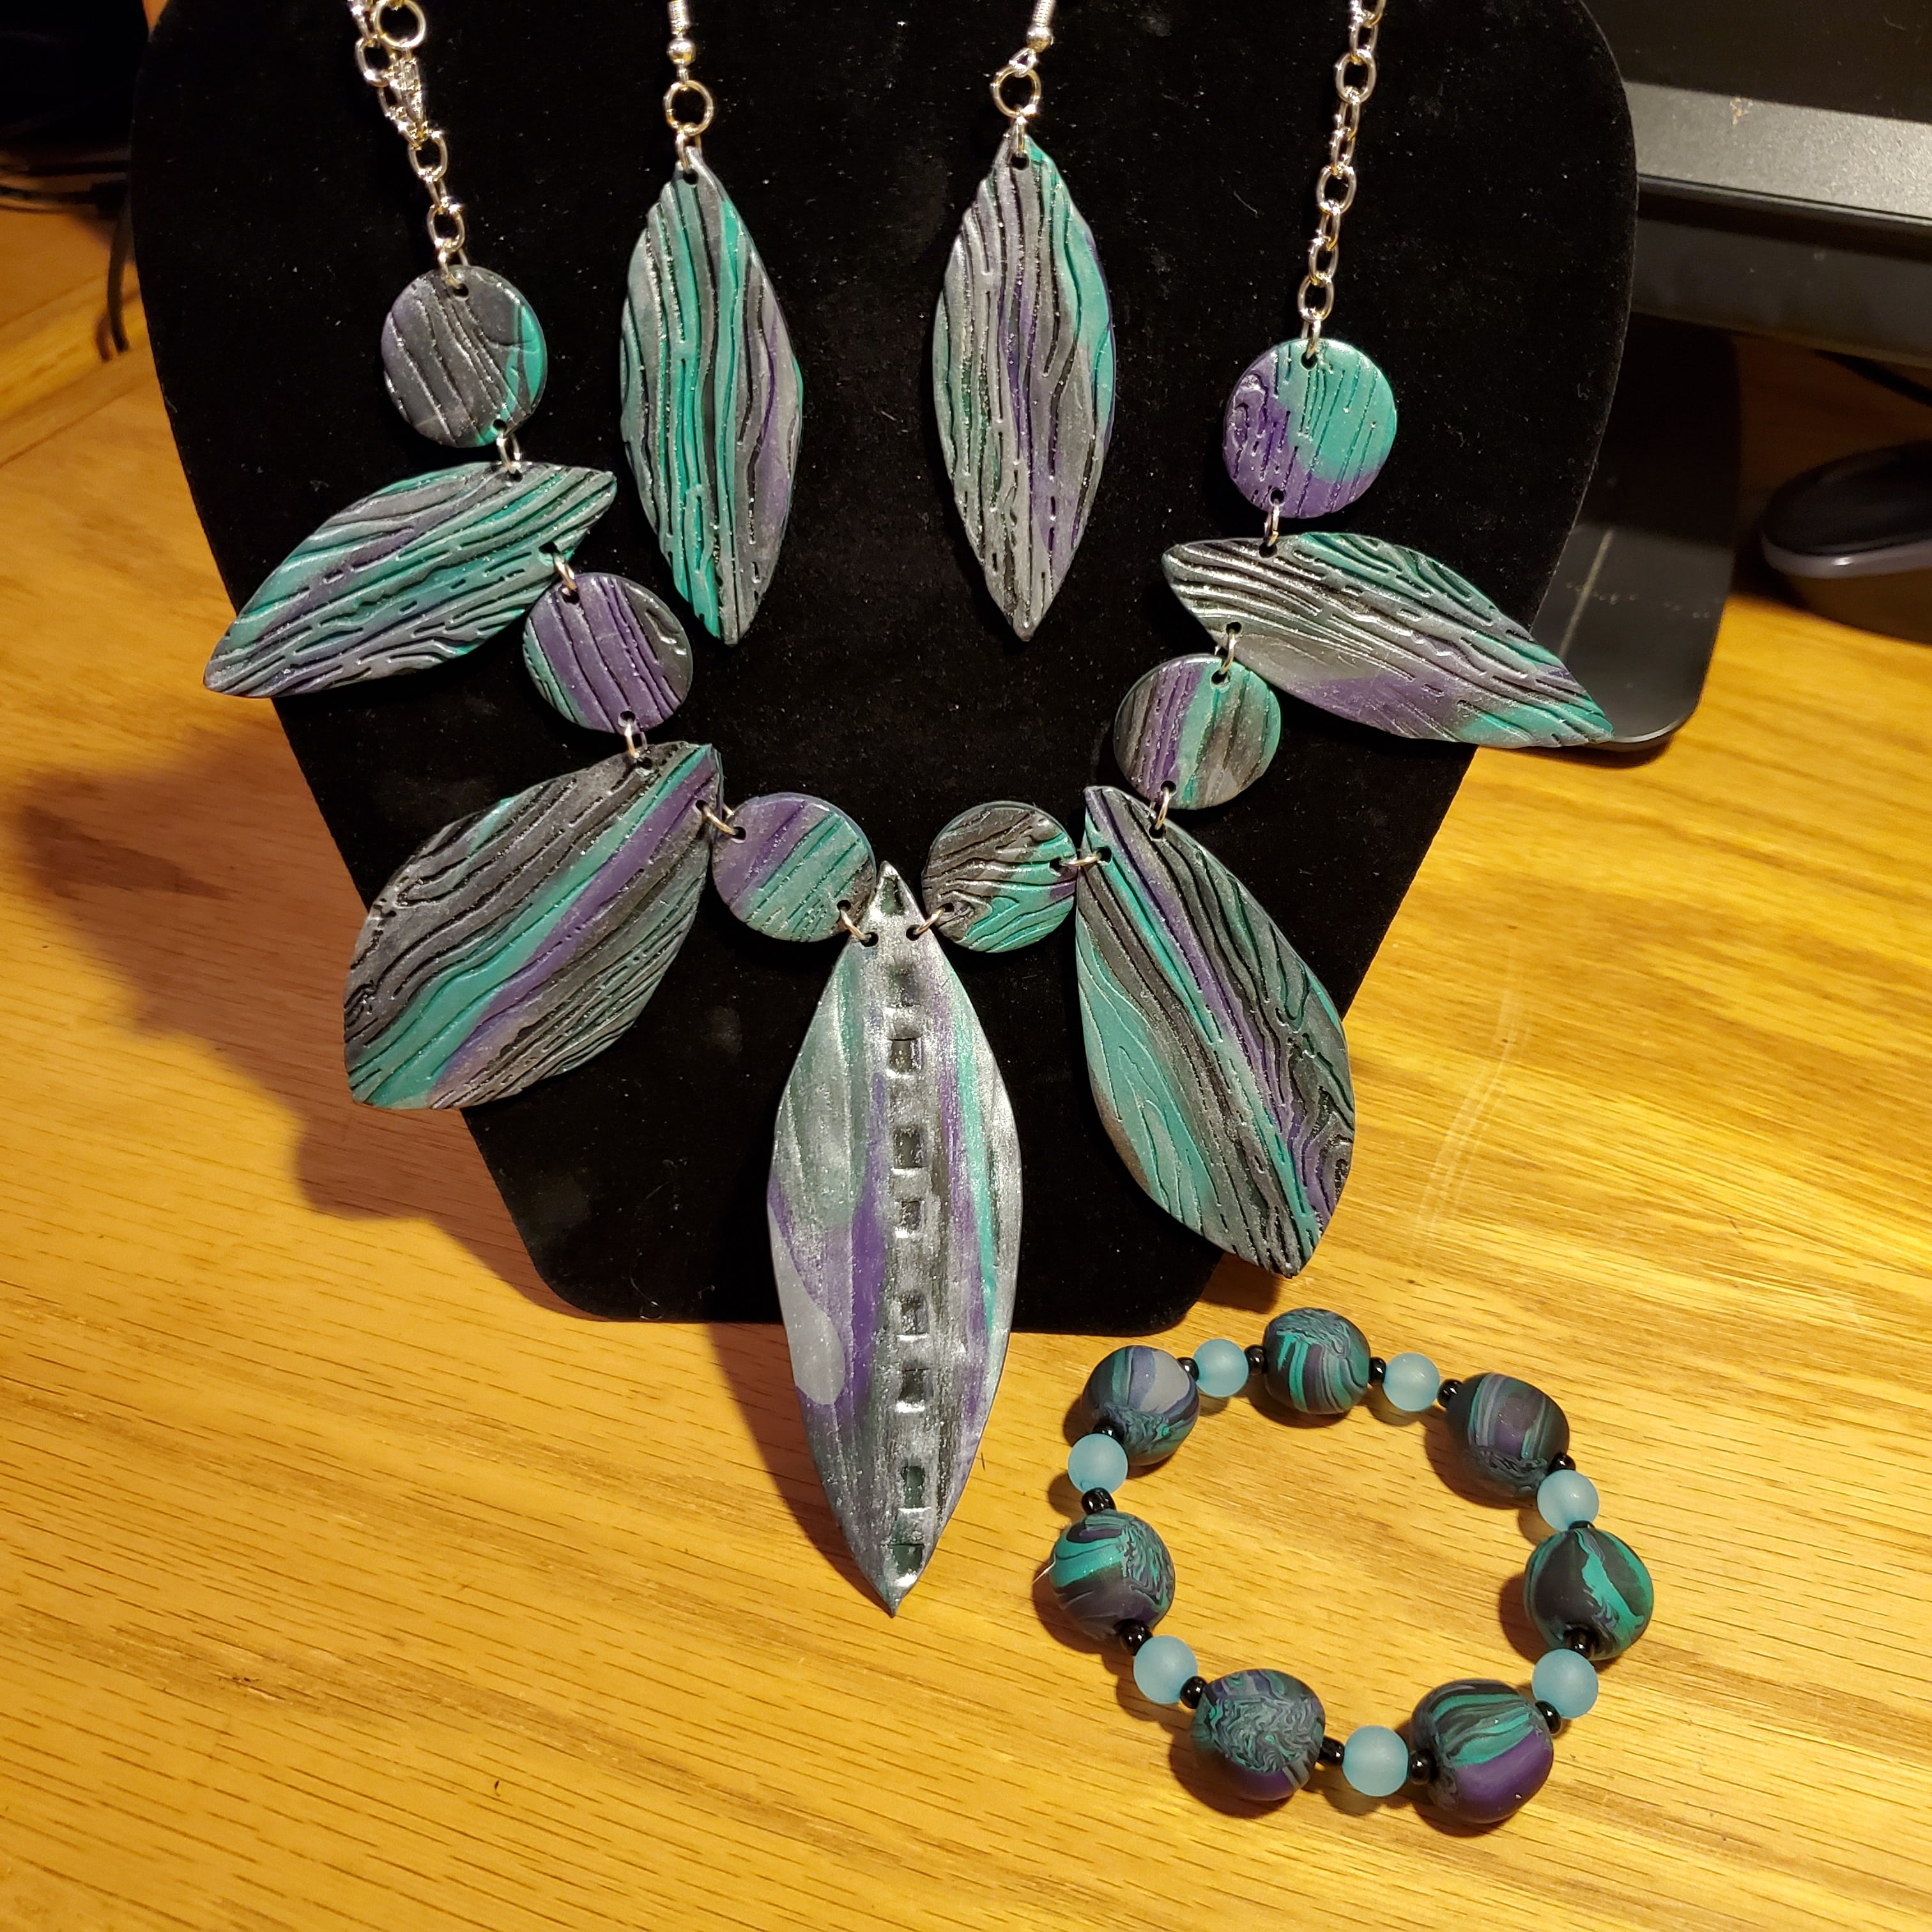 Stunning Textured Blue Necklace and Bracelet